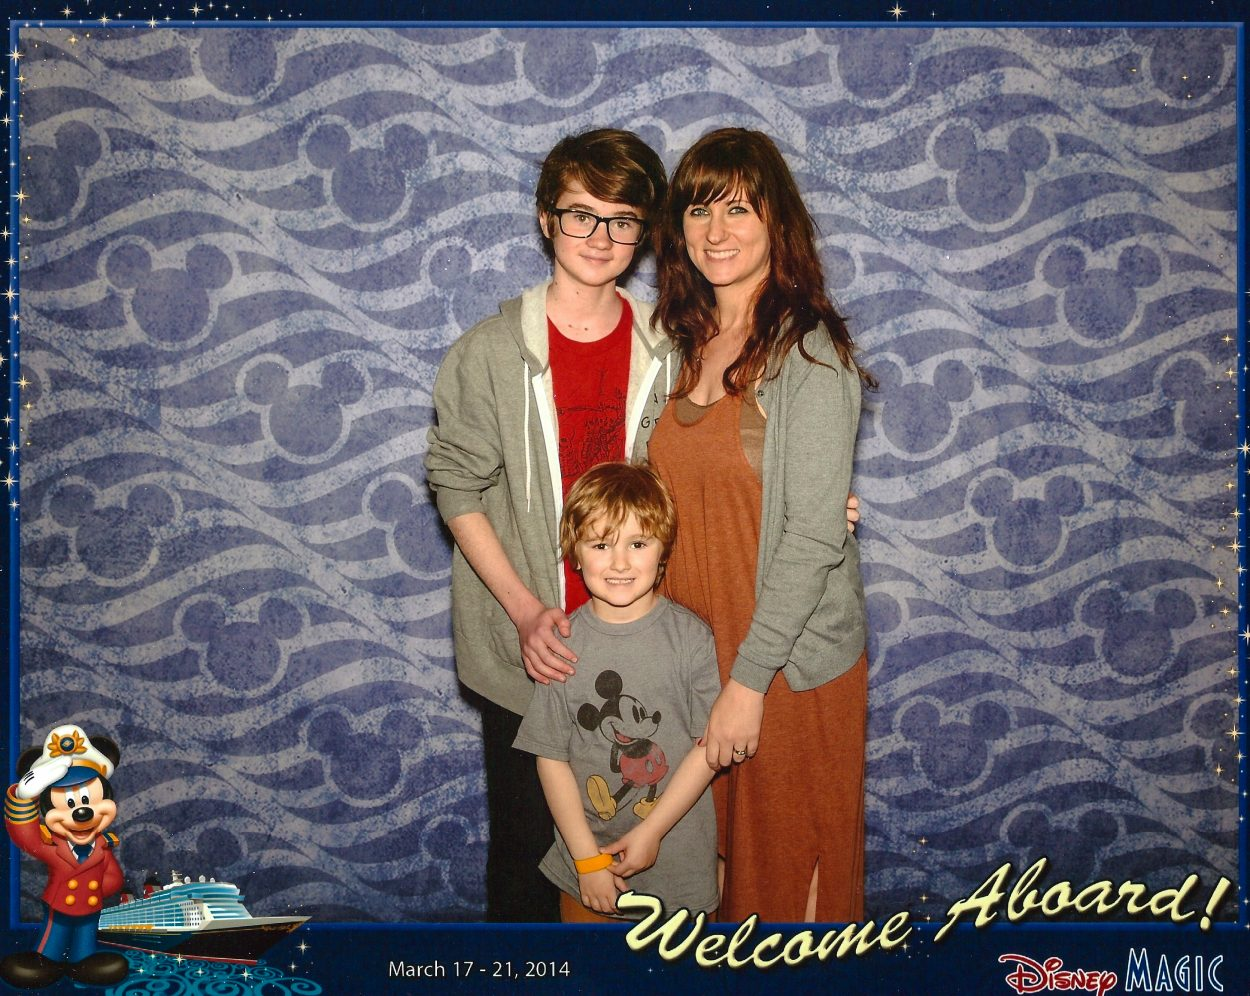 Disney Magic Cruise Pic